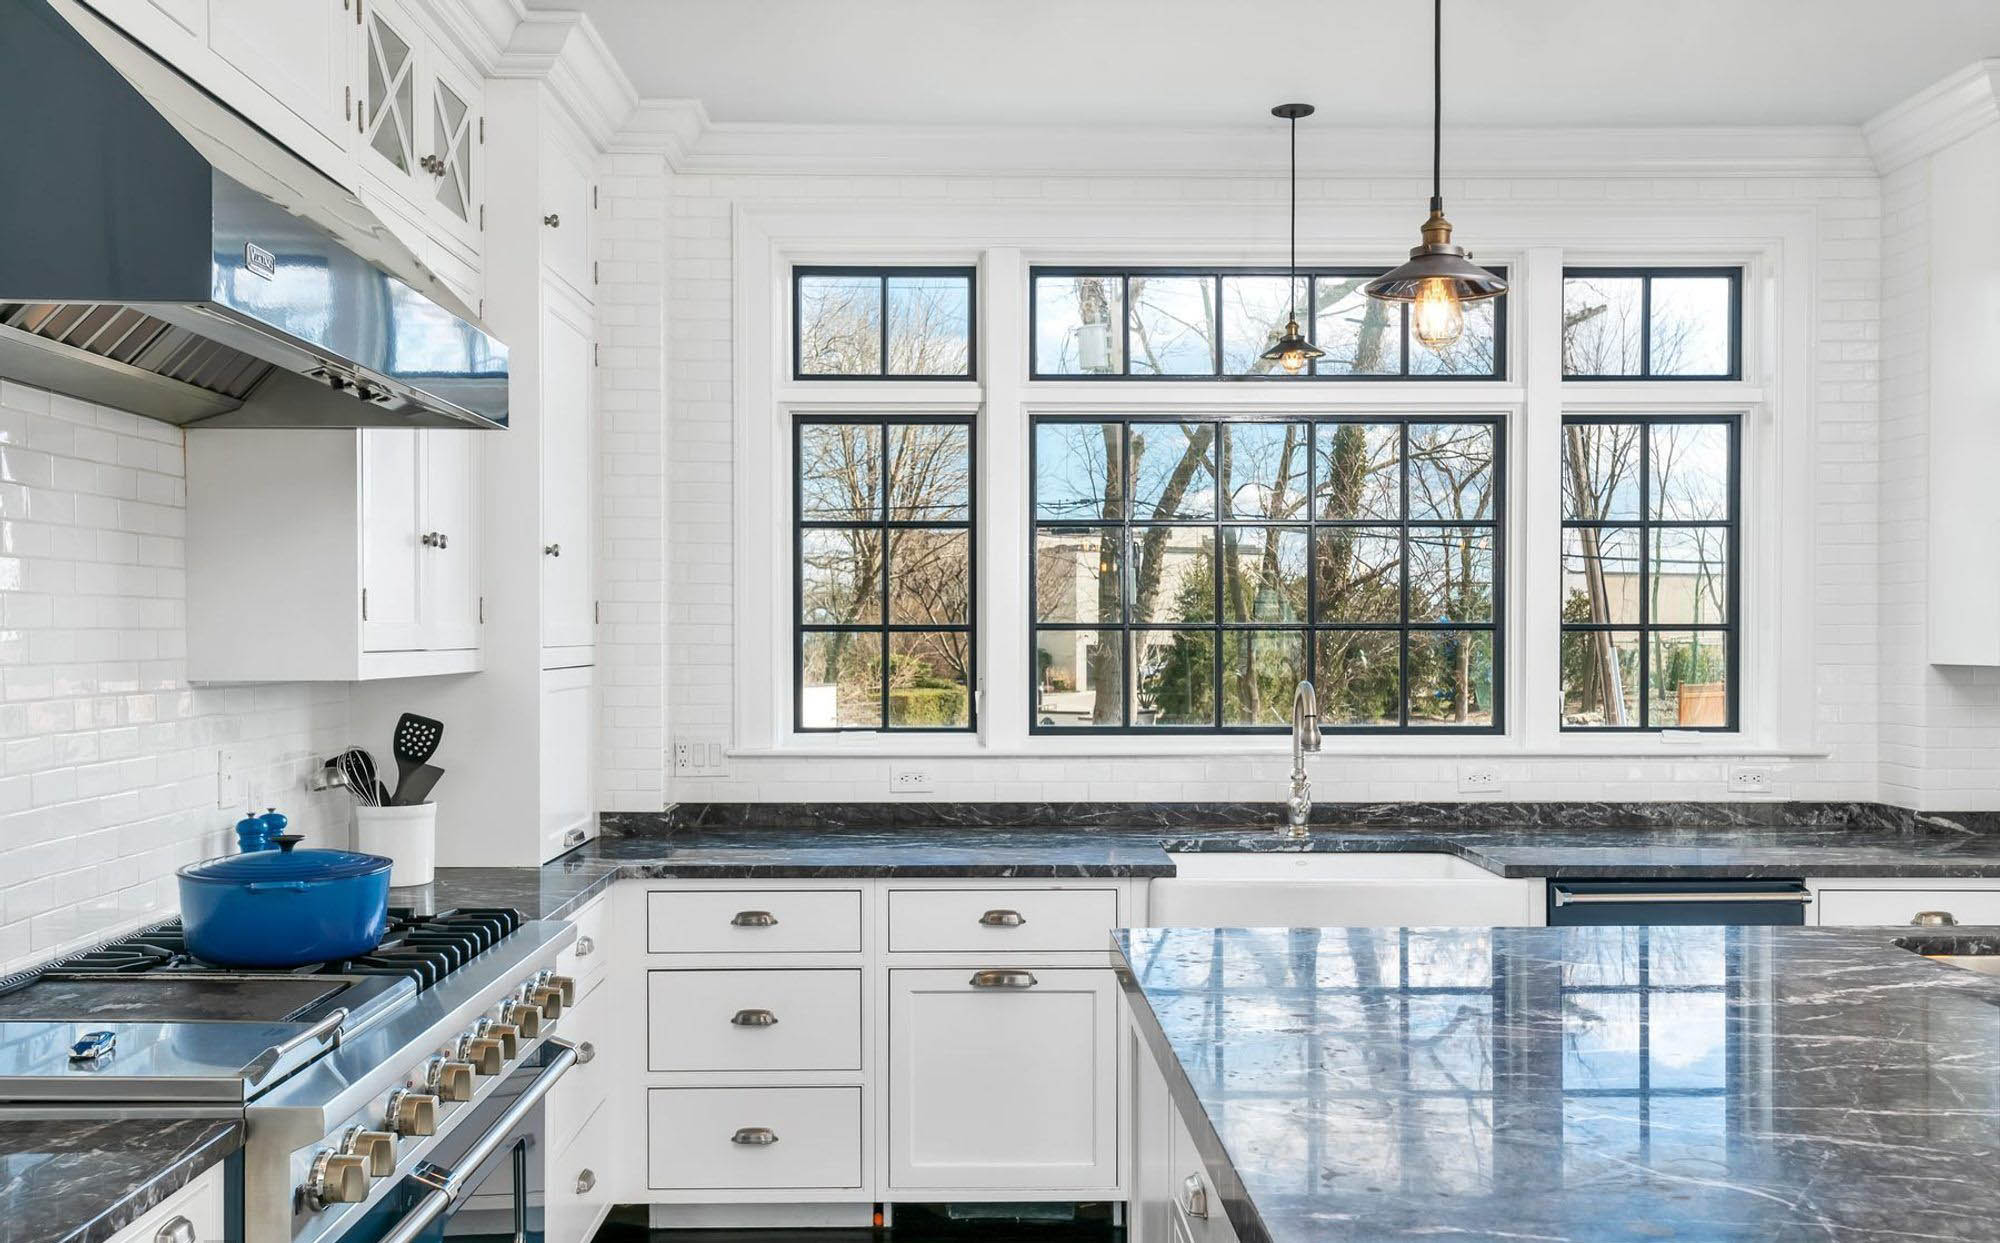 Black and white kitchen design. White cabinets with black granite. Black frame windows with white trim and white subway wall tiles.